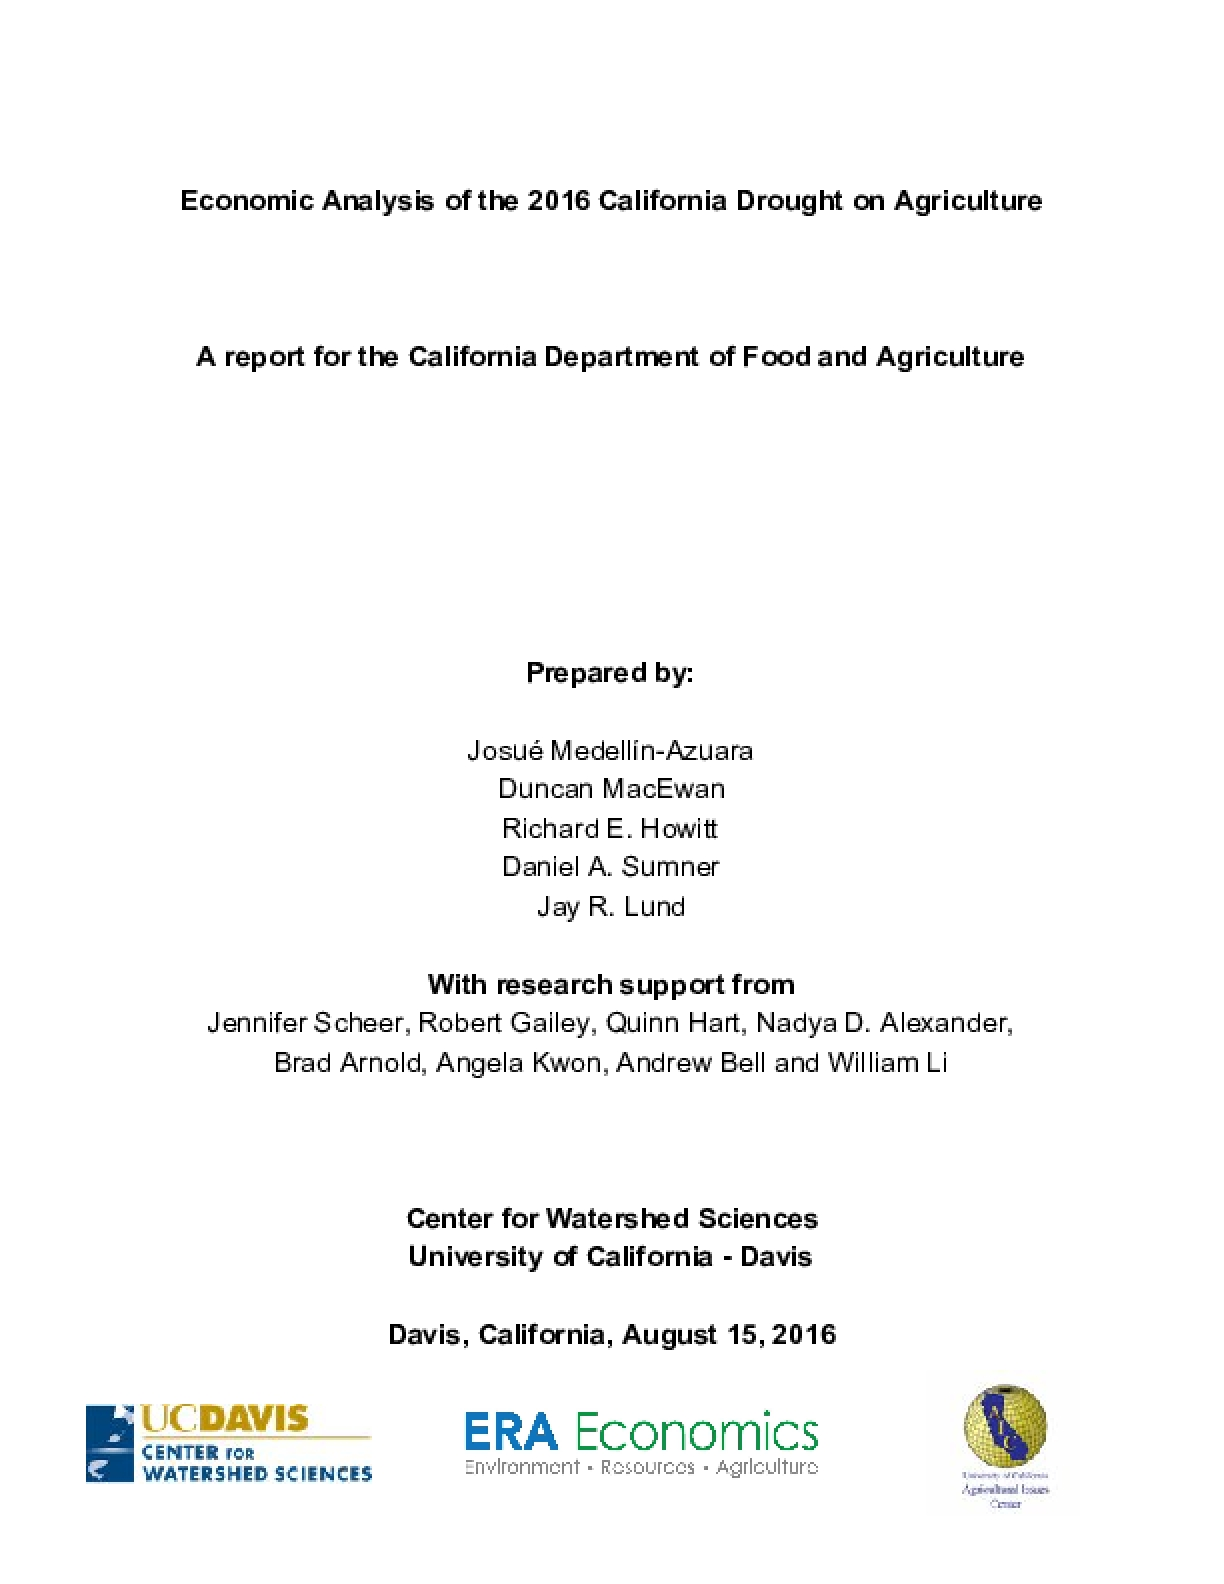 Economic Analysis of the 2016 California Drought on Agriculture:  A report for the California Department of Food and Agriculture